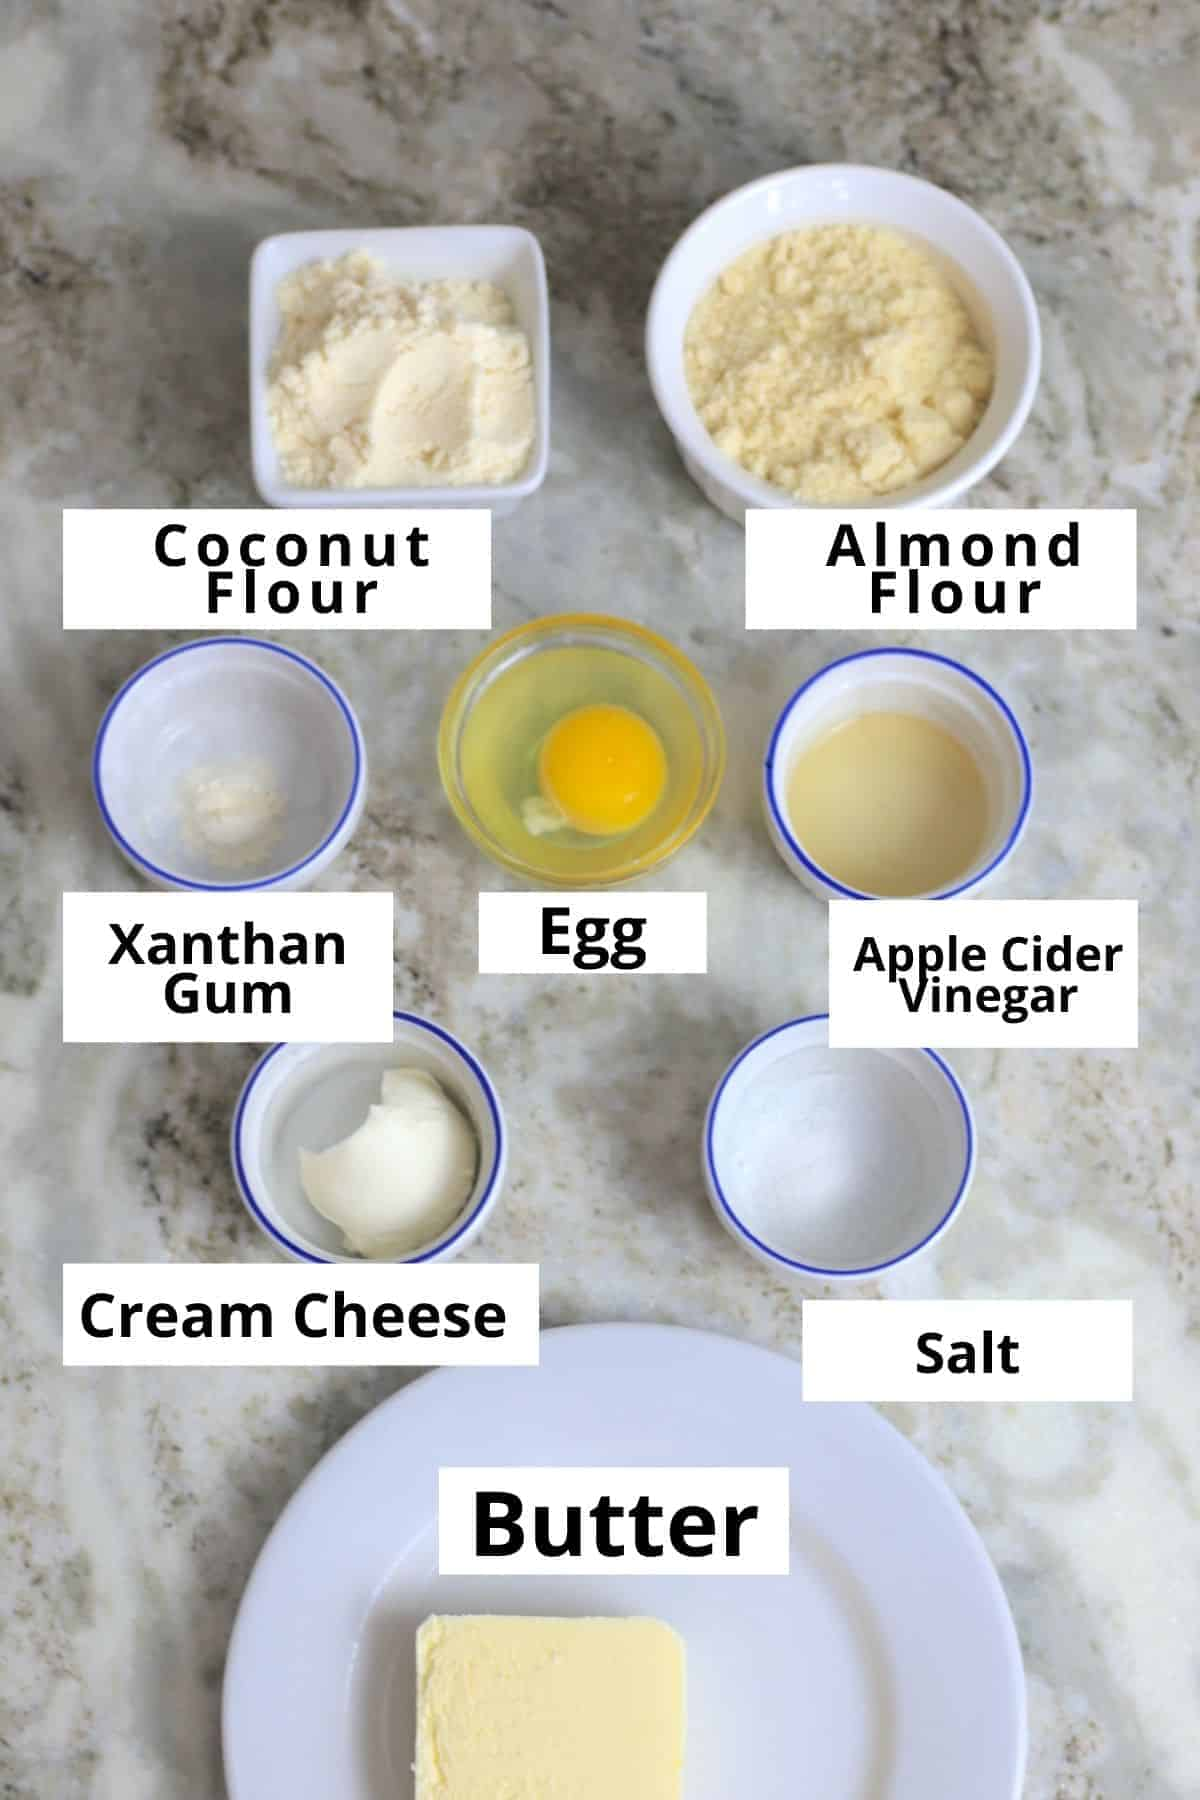 Ingredients for the pasty crust